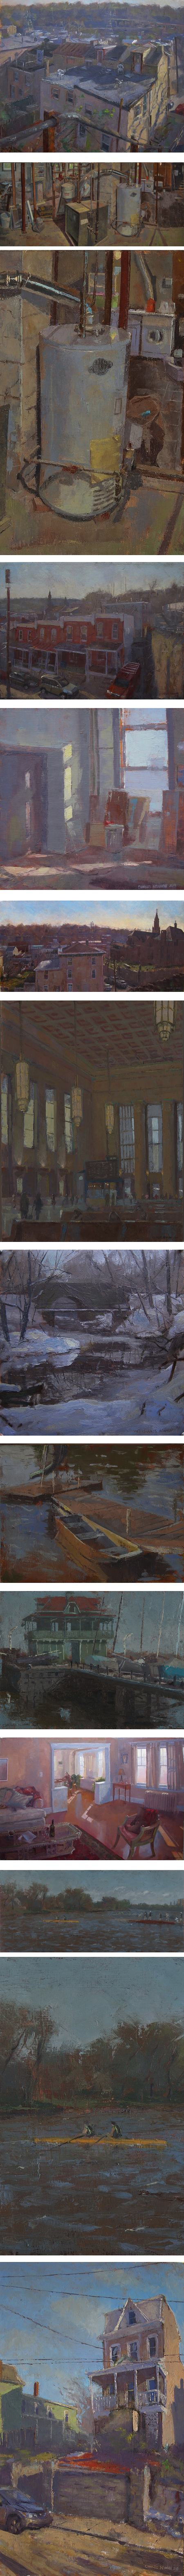 Charles Newman, plein air landscapes and interiors